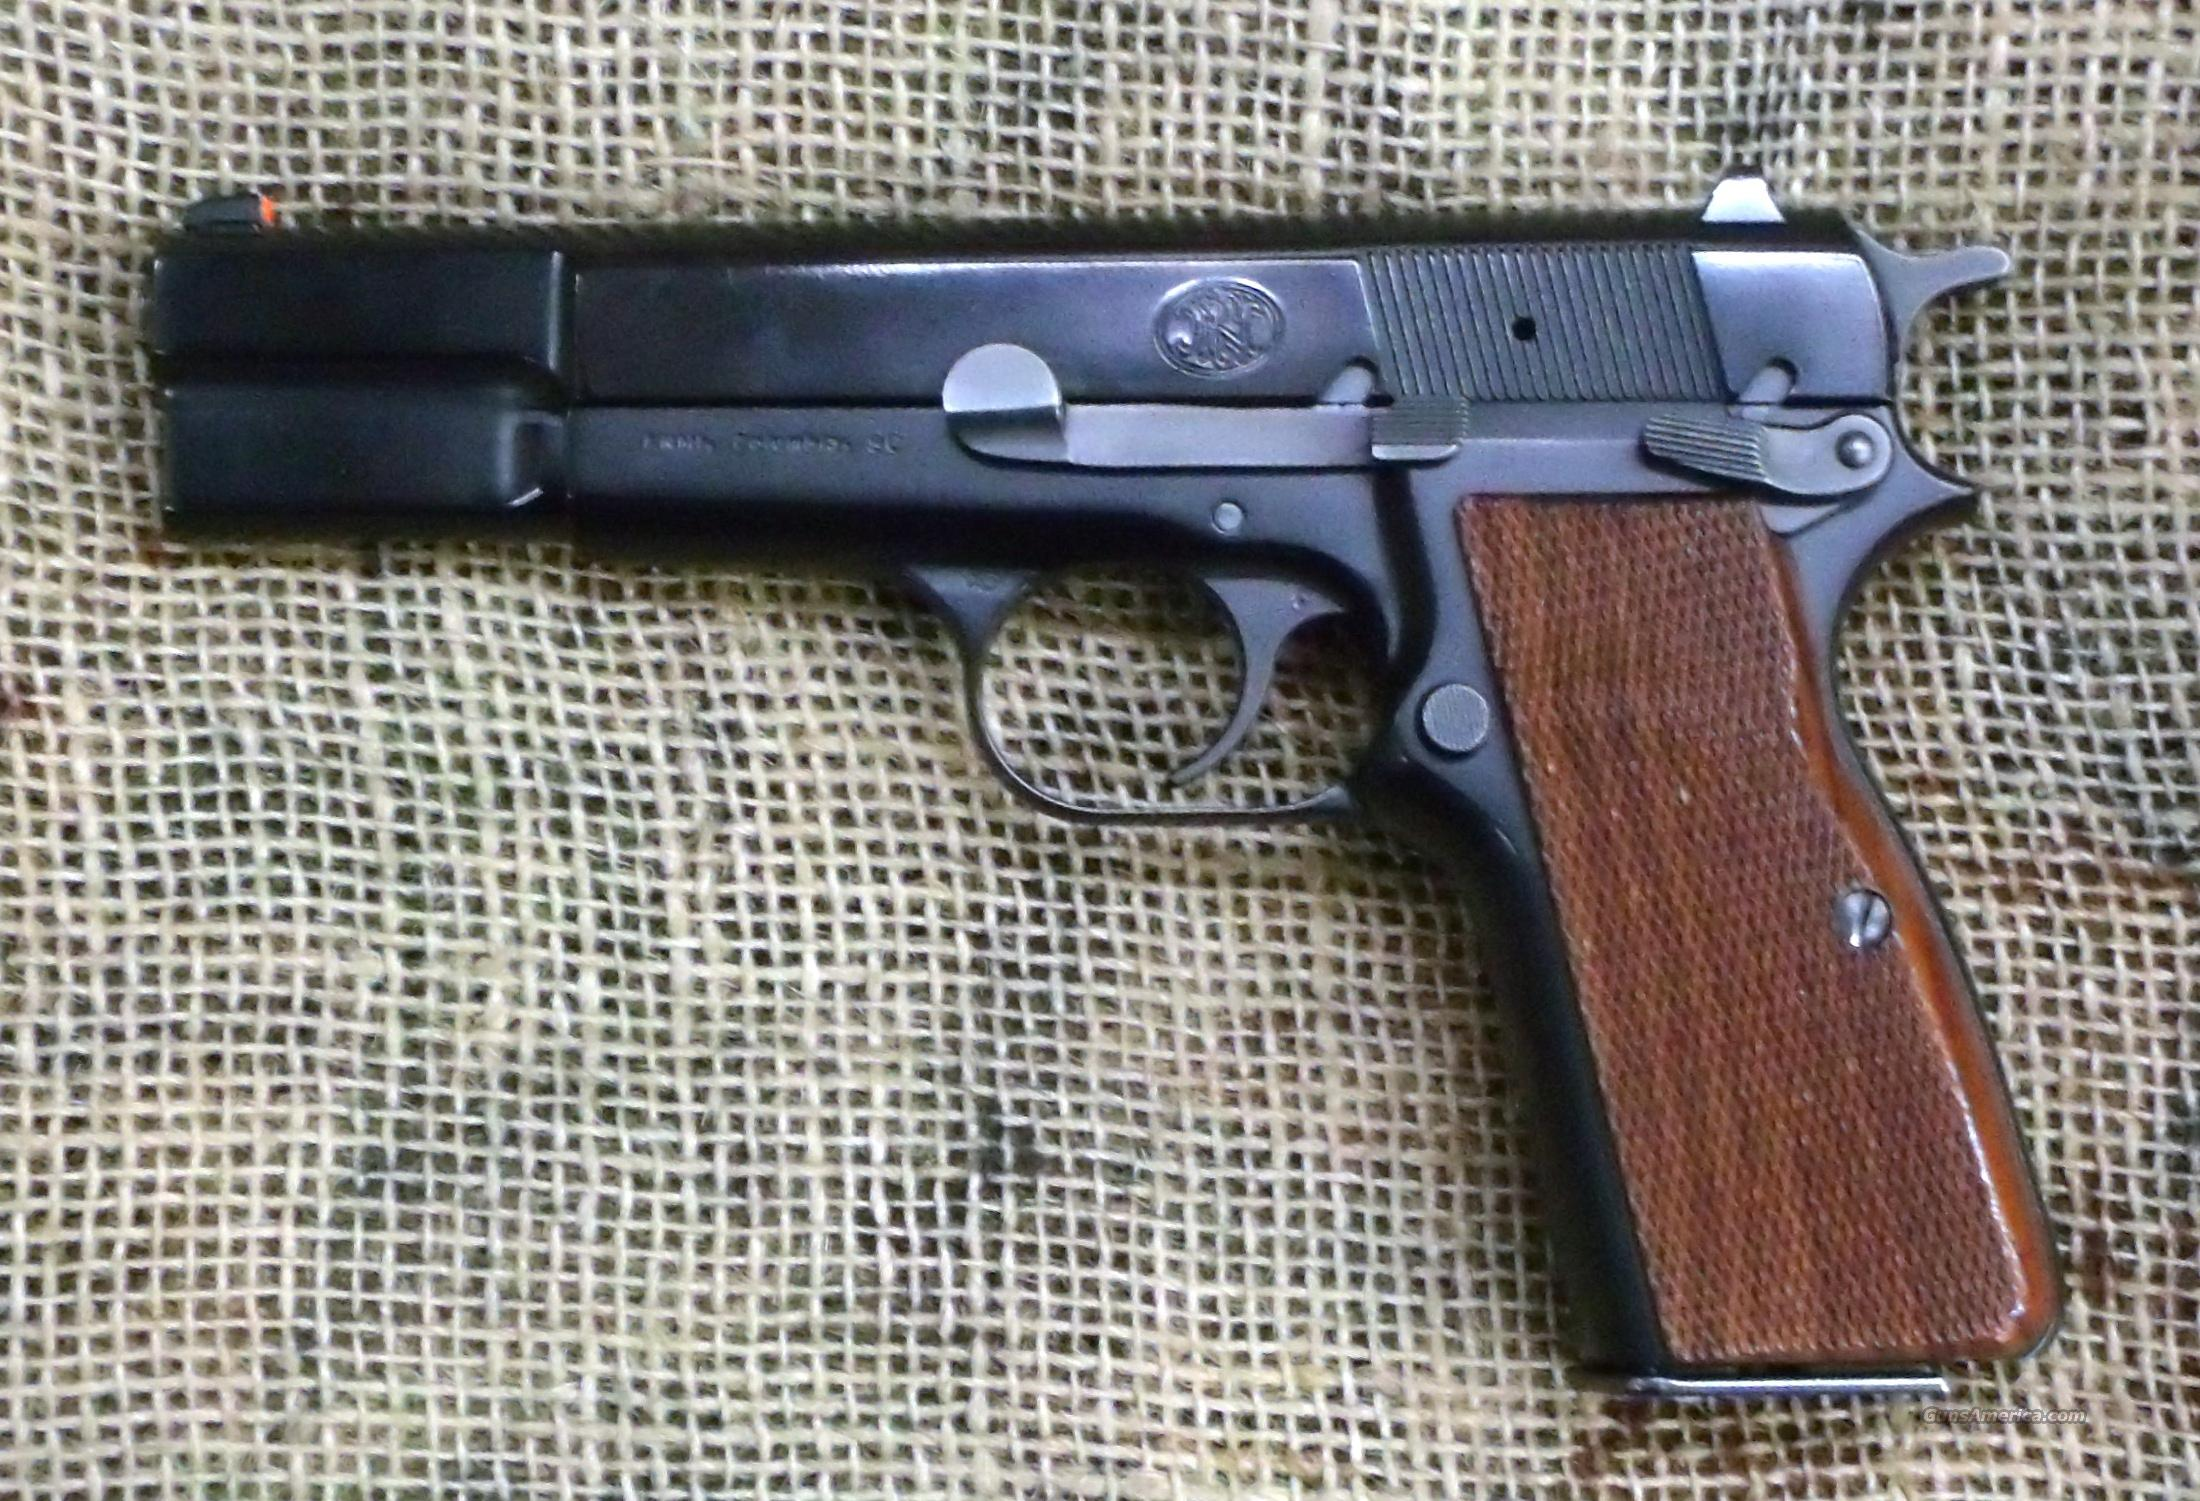 FN Hi-Power Pistol, 9mm Luger Cal  Guns > Pistols > FNH - Fabrique Nationale (FN) Pistols > High Power Type